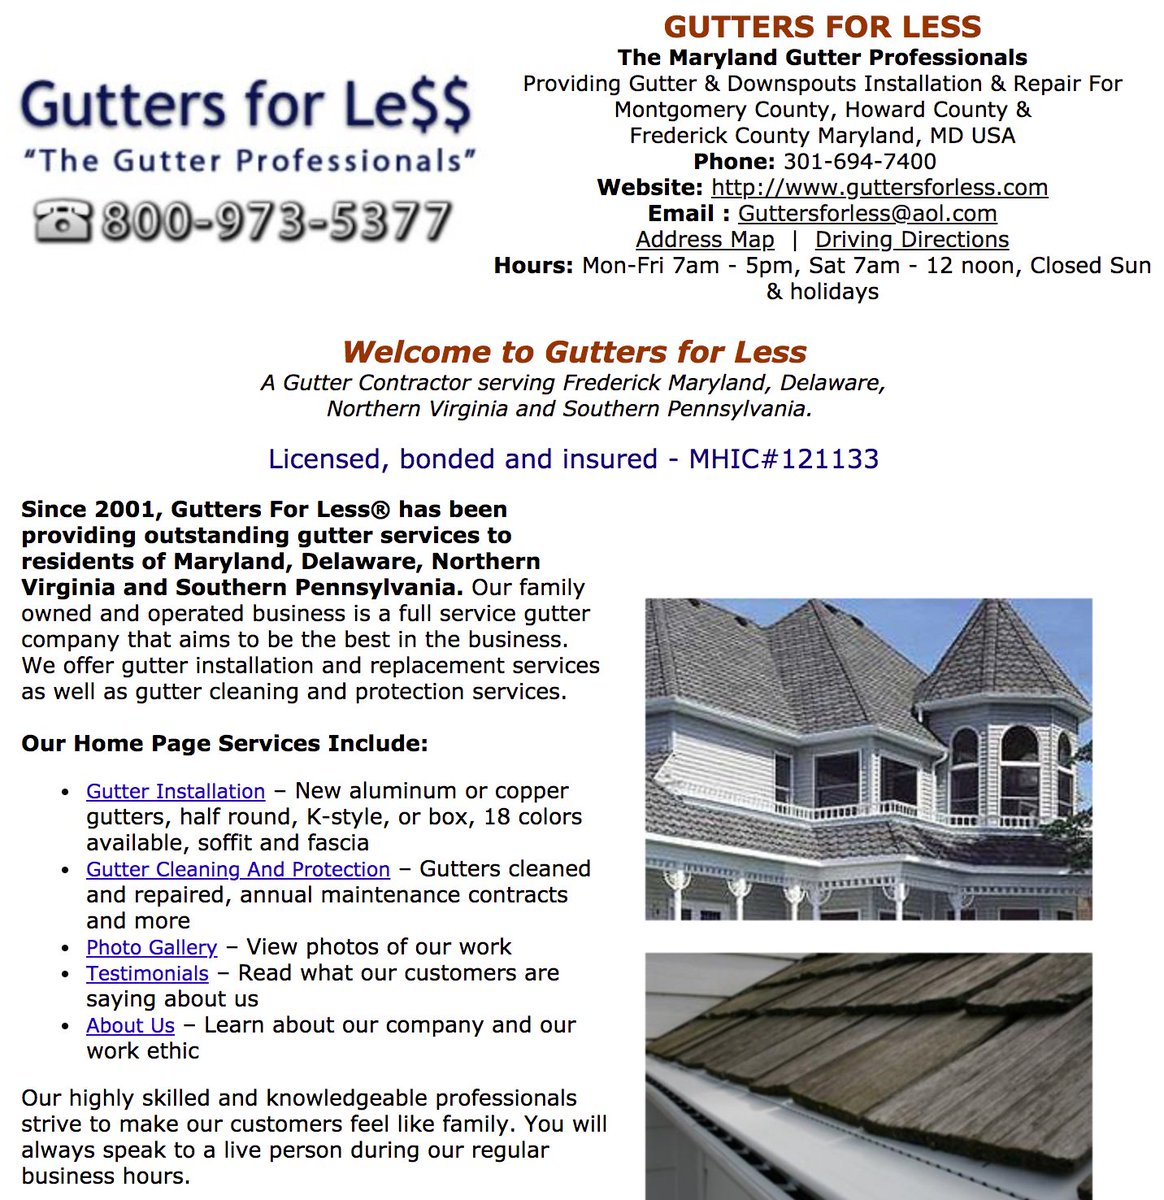 Gutters For Less The Maryland Gutter Professionals Providing Downspouts Installation Repair Montgomery County Howard Frederick